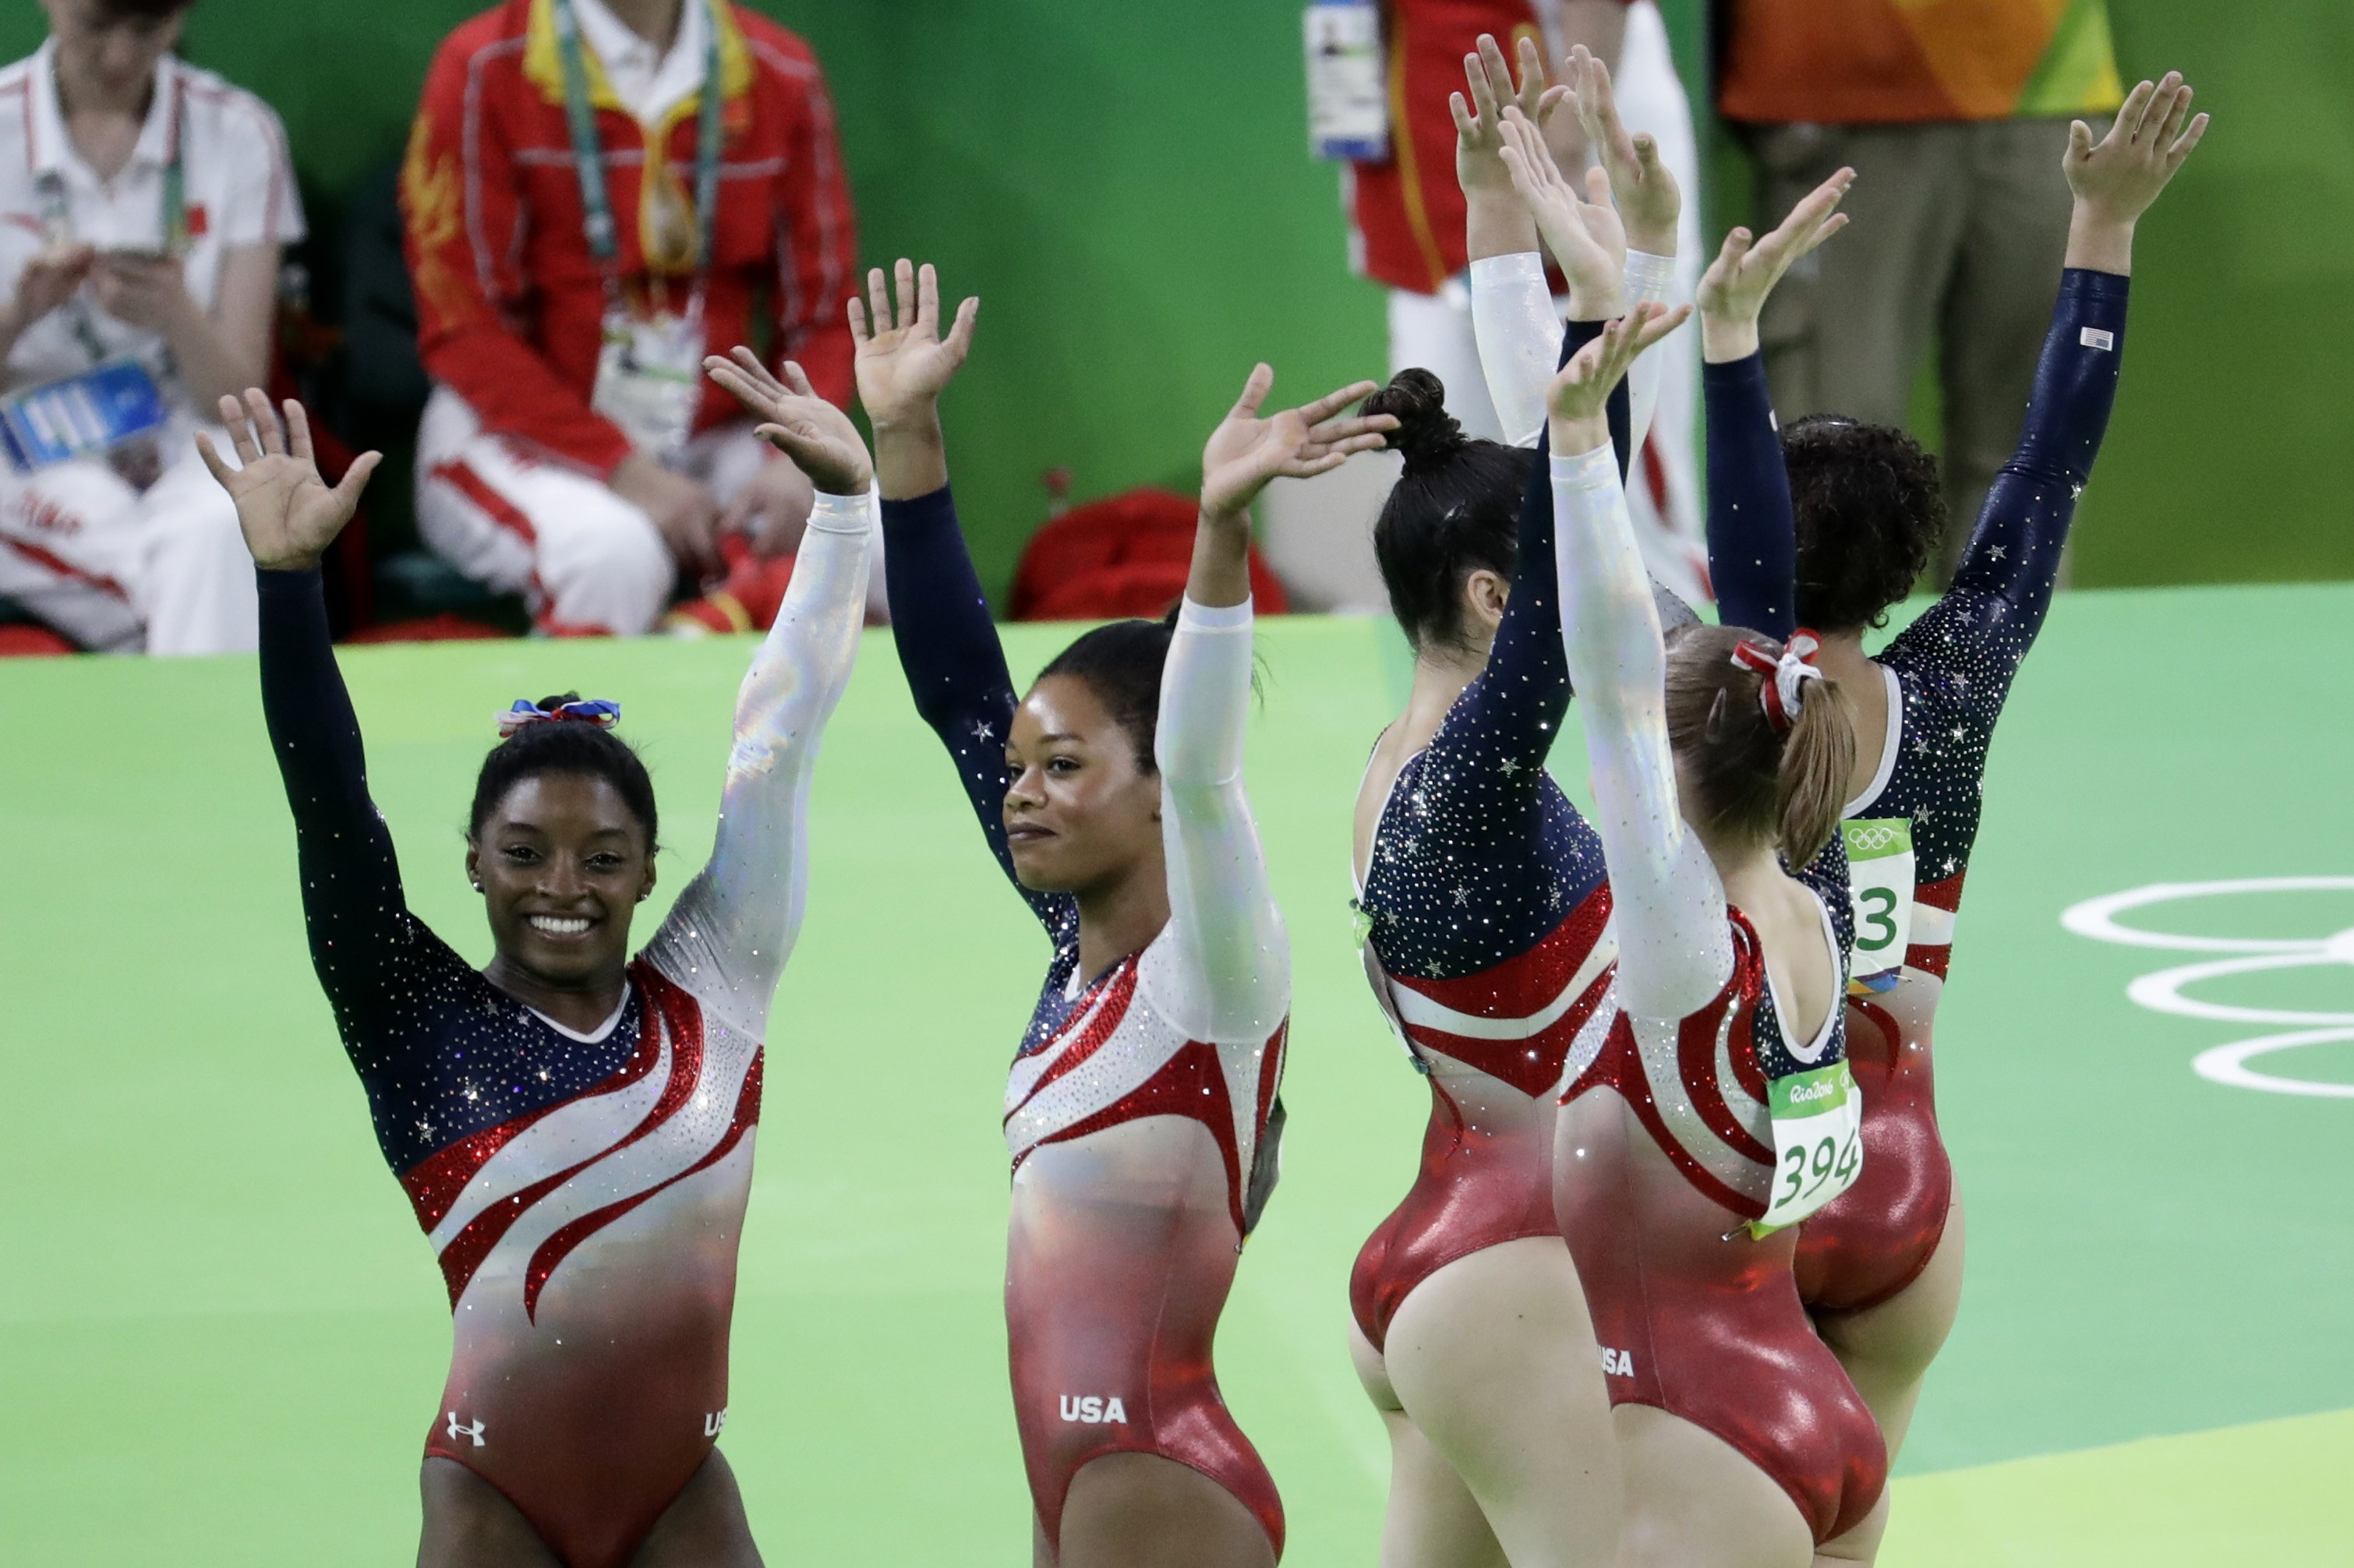 U.S. gymnasts Simone Biles, left, and Gabrielle Douglas, second left, wave to the audience at the end of the artistic gymnastics women's team final at the 2016 Summer Olympics in Rio de Janeiro, Brazil, Tuesday, Aug. 9, 2016. ((AP Photo/Dmitri Lovetsky)